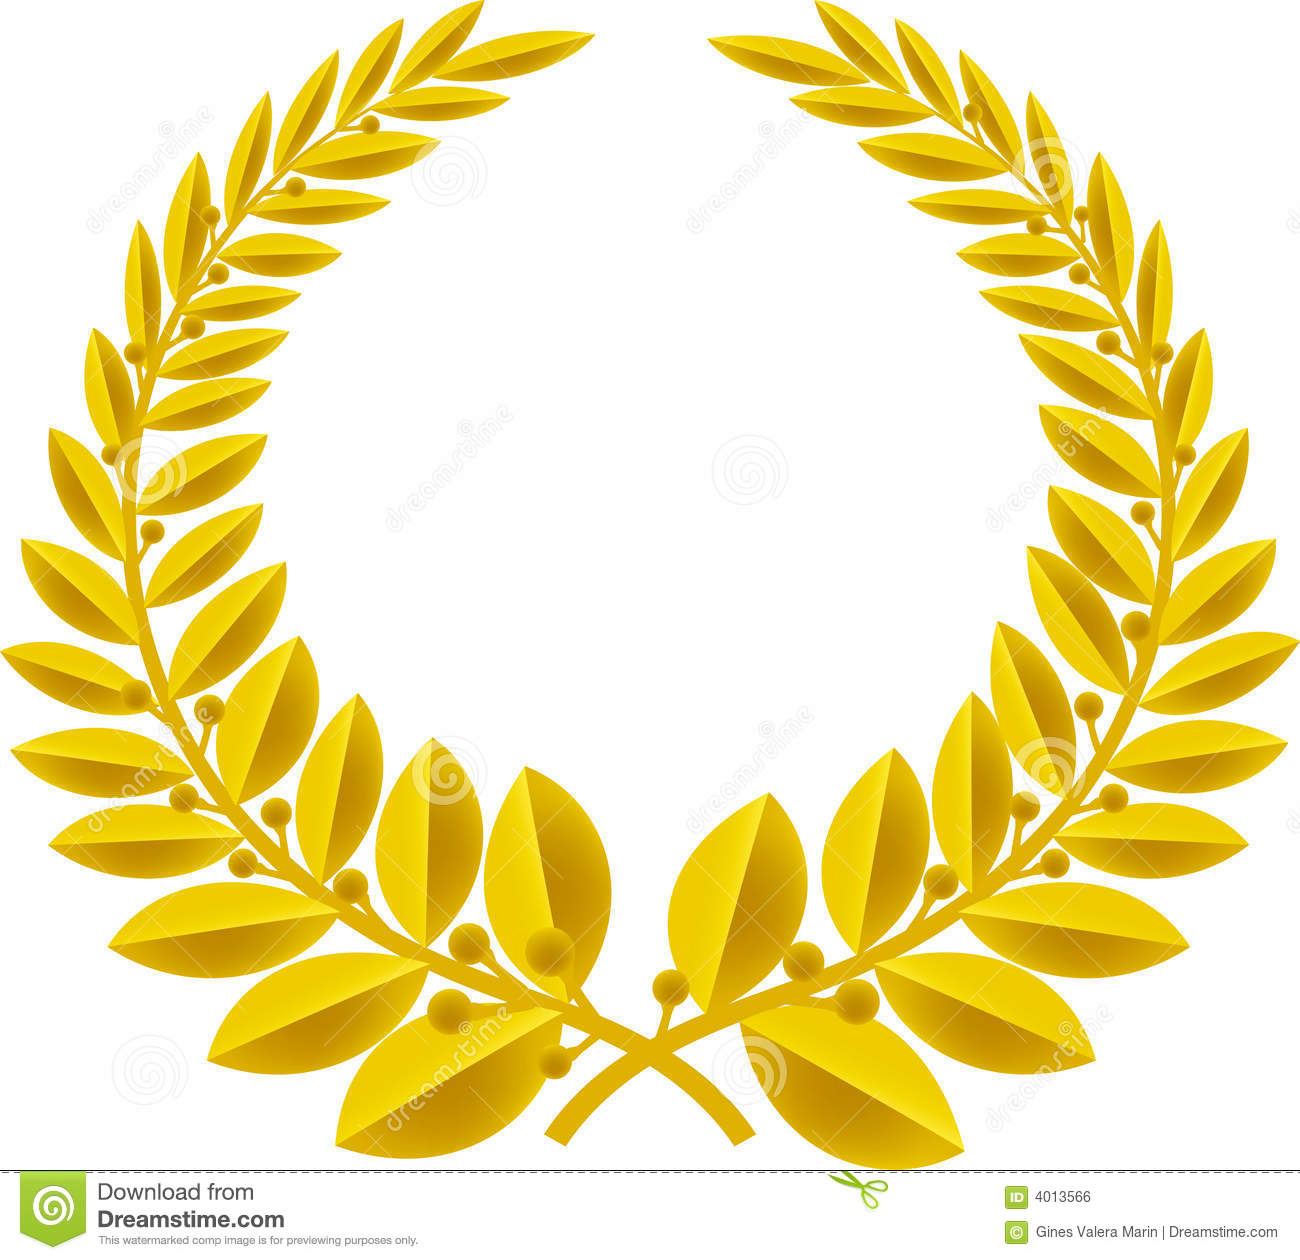 Royalty Free Stock Image Laurel Wreath Gold Vector Image4013566 furthermore Italy Rome 002 besides Photodet also The Theater Of Marcellus In Rome By Angelo Ferraris furthermore Naples Ville Ditalie 2. on rome